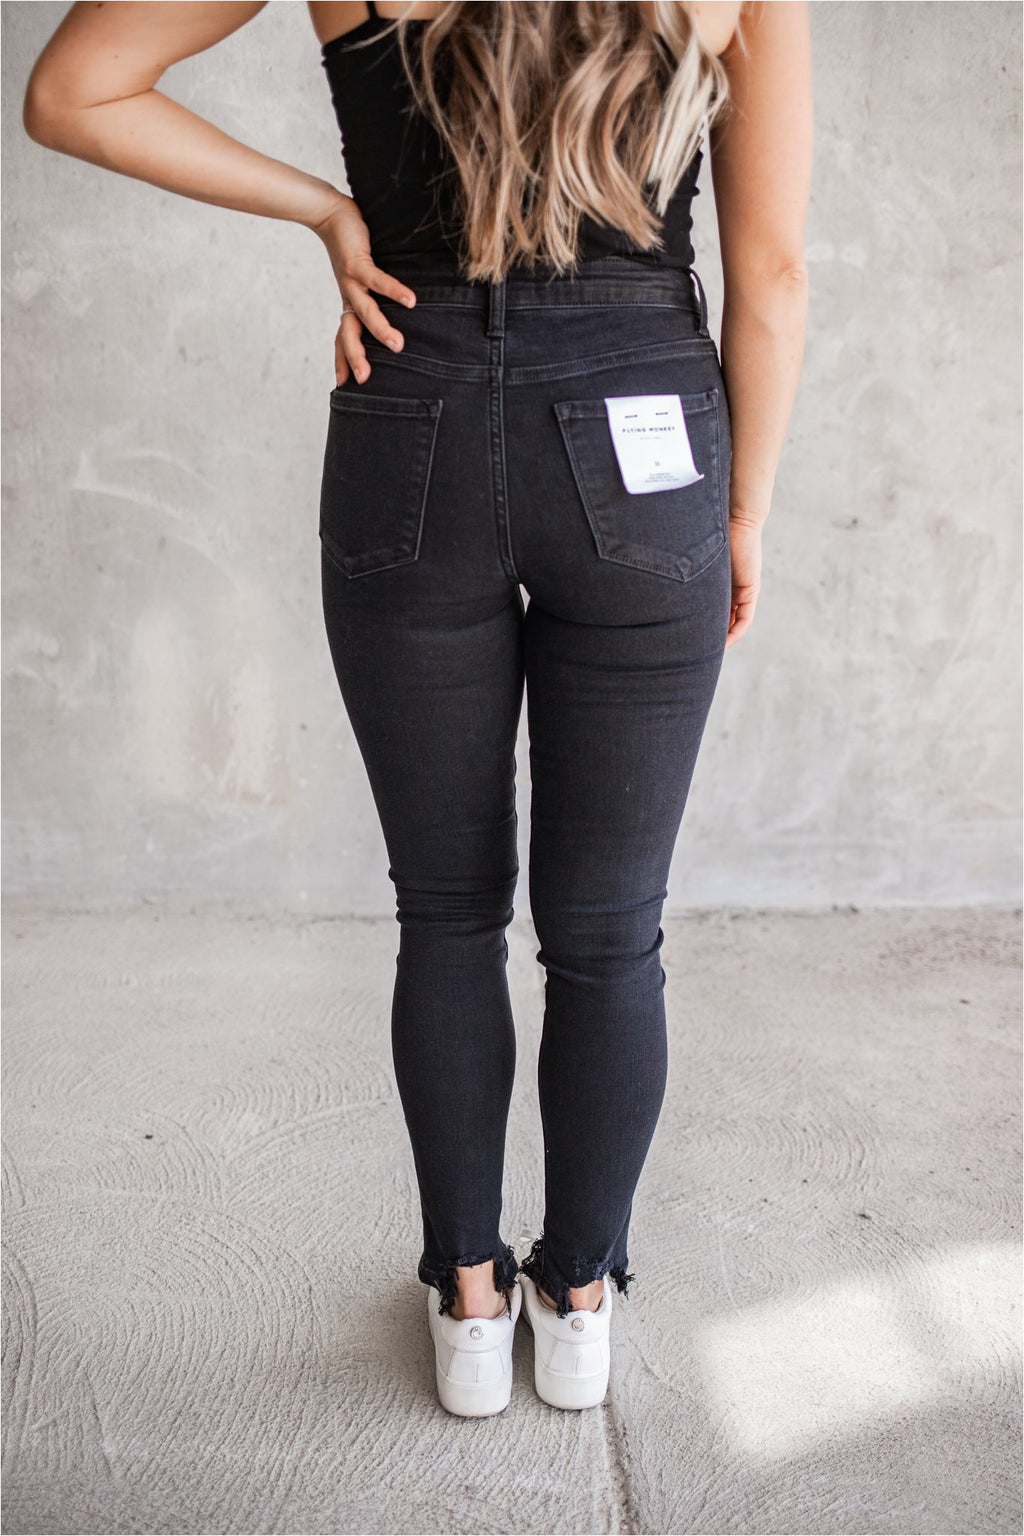 Memories Black Button Fly High Rise Jeans - BluePeppermint Boutique